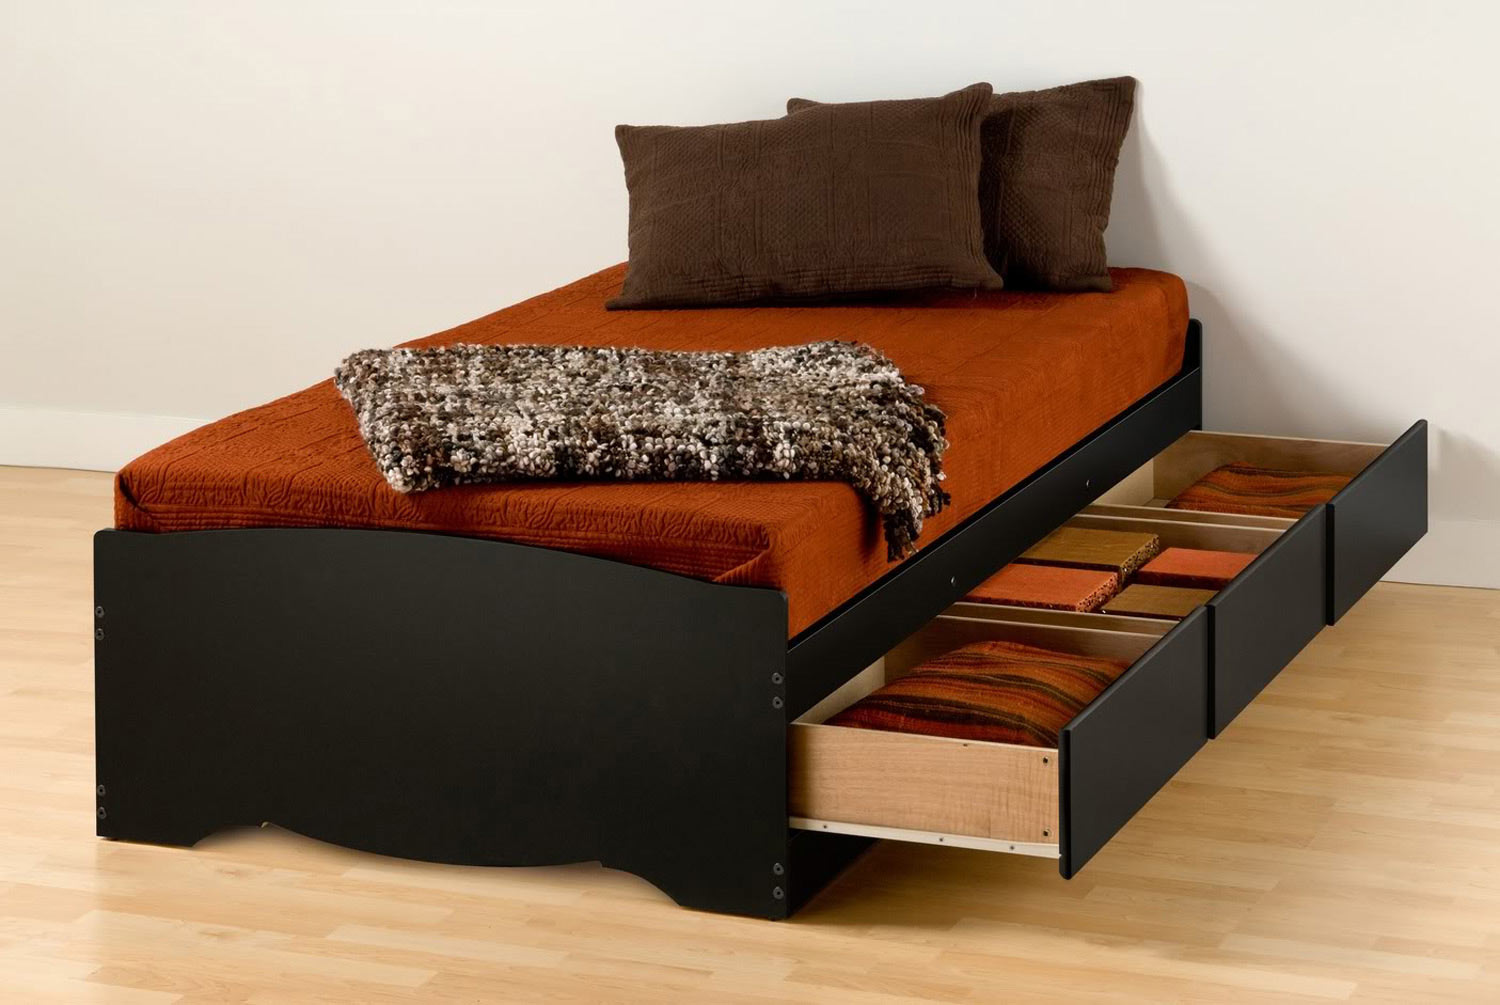 Prepac XL Mate's Platform Storage Bed with 3 Drawers - Black